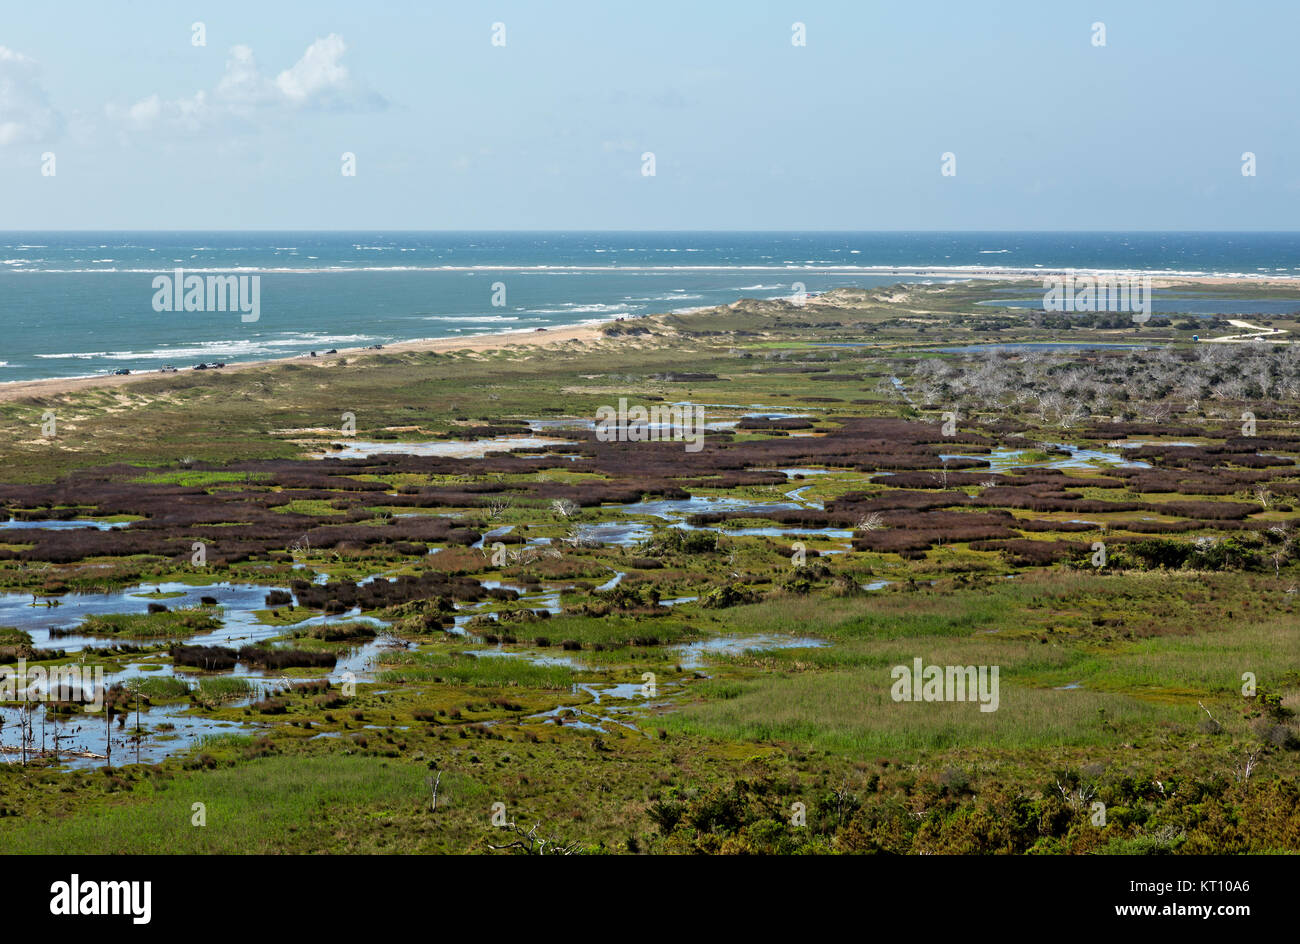 NC01129-00...NORTH CAROLINA - View of the marshes, beach and spit at Cape Hatteras from the Observation Deck of - Stock Image